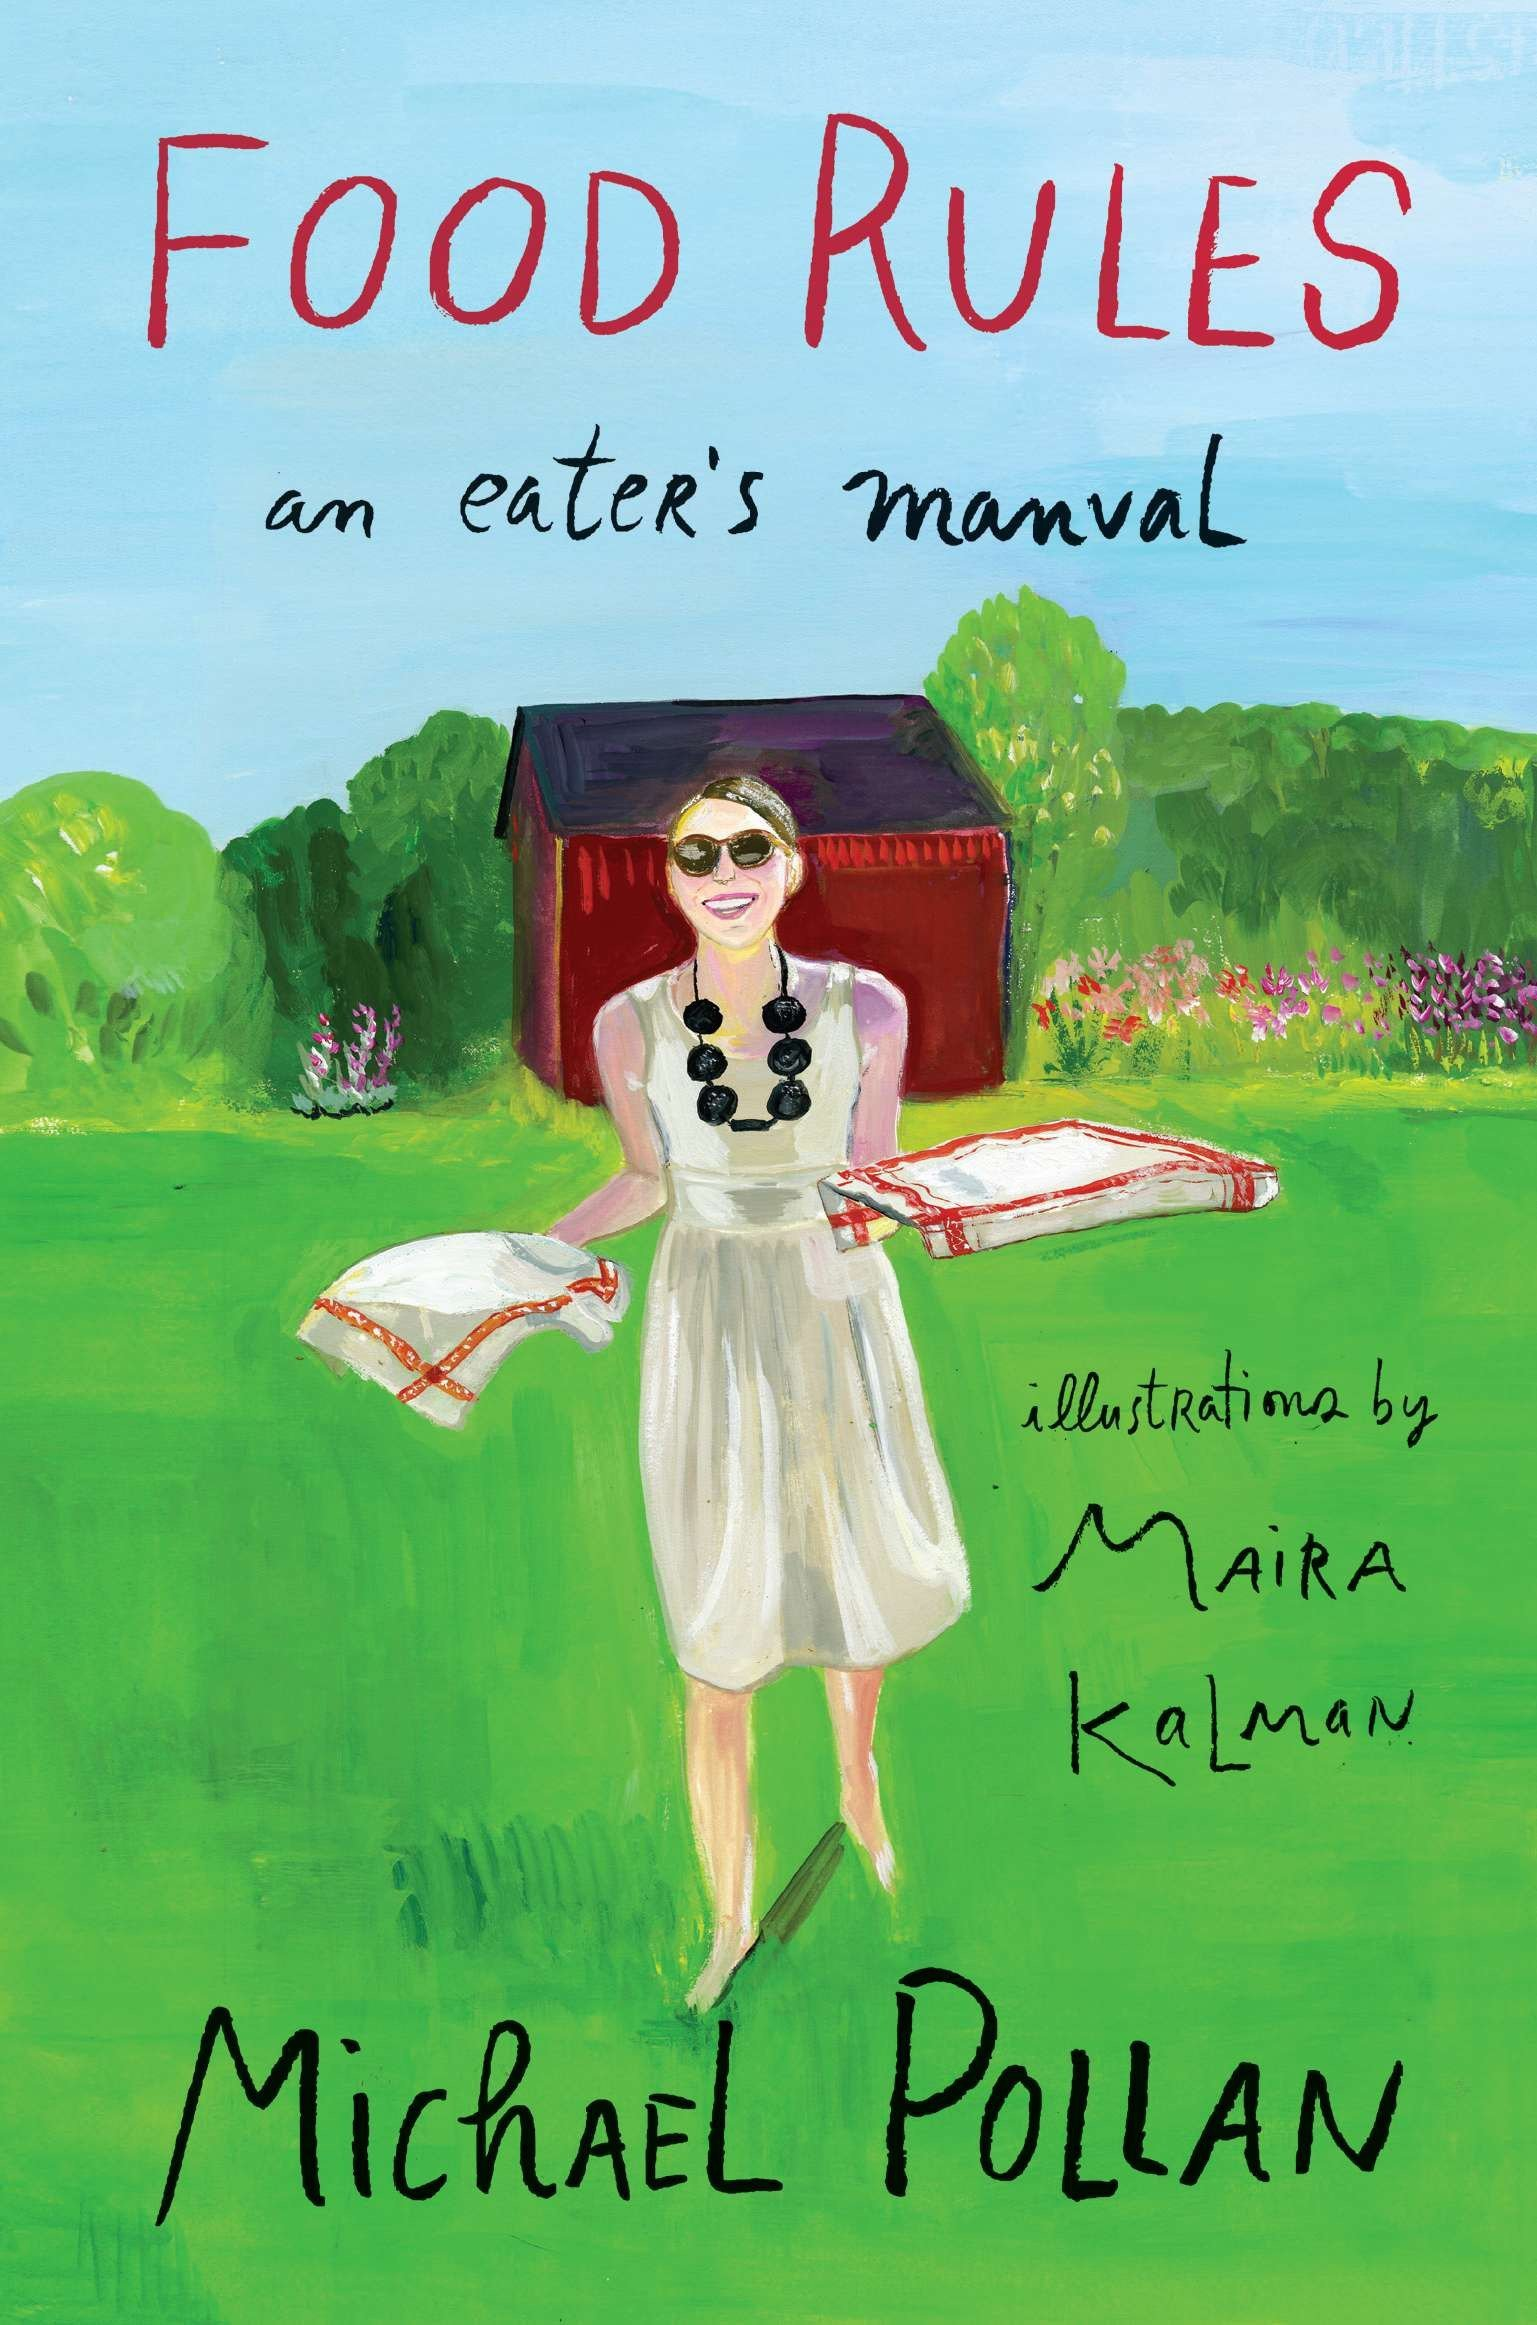 food Rules : an eater's manual - By Michael PollanMichael Pollan and Maira Kalman come together to create an enhanced Food Rules for hardcover, now beautifully illustrated and with even more food wisdom.Michael Pollan's definitive compendium, Food Rules, is here brought to colorful life with the addition of Maira Kalman's beloved illustrations.This brilliant pairing is rooted in Pollan's and Kalman's shared appreciation for eating's pleasures, and their understanding that eating doesn't have to be so complicated. Written with the clarity, concision, and wit that is Michael Pollan's trademark, this indispensable handbook lays out a set of straightforward, memorable rules for eating wisely. Kalman's paintings remind us that there is delight in learning to eat well.The hardcover Pollan-Kalman collaboration will be the Food Rules edition that families will pass down for posterity, sharing lessons for eating healthfully-and joyfully-for all their lives.